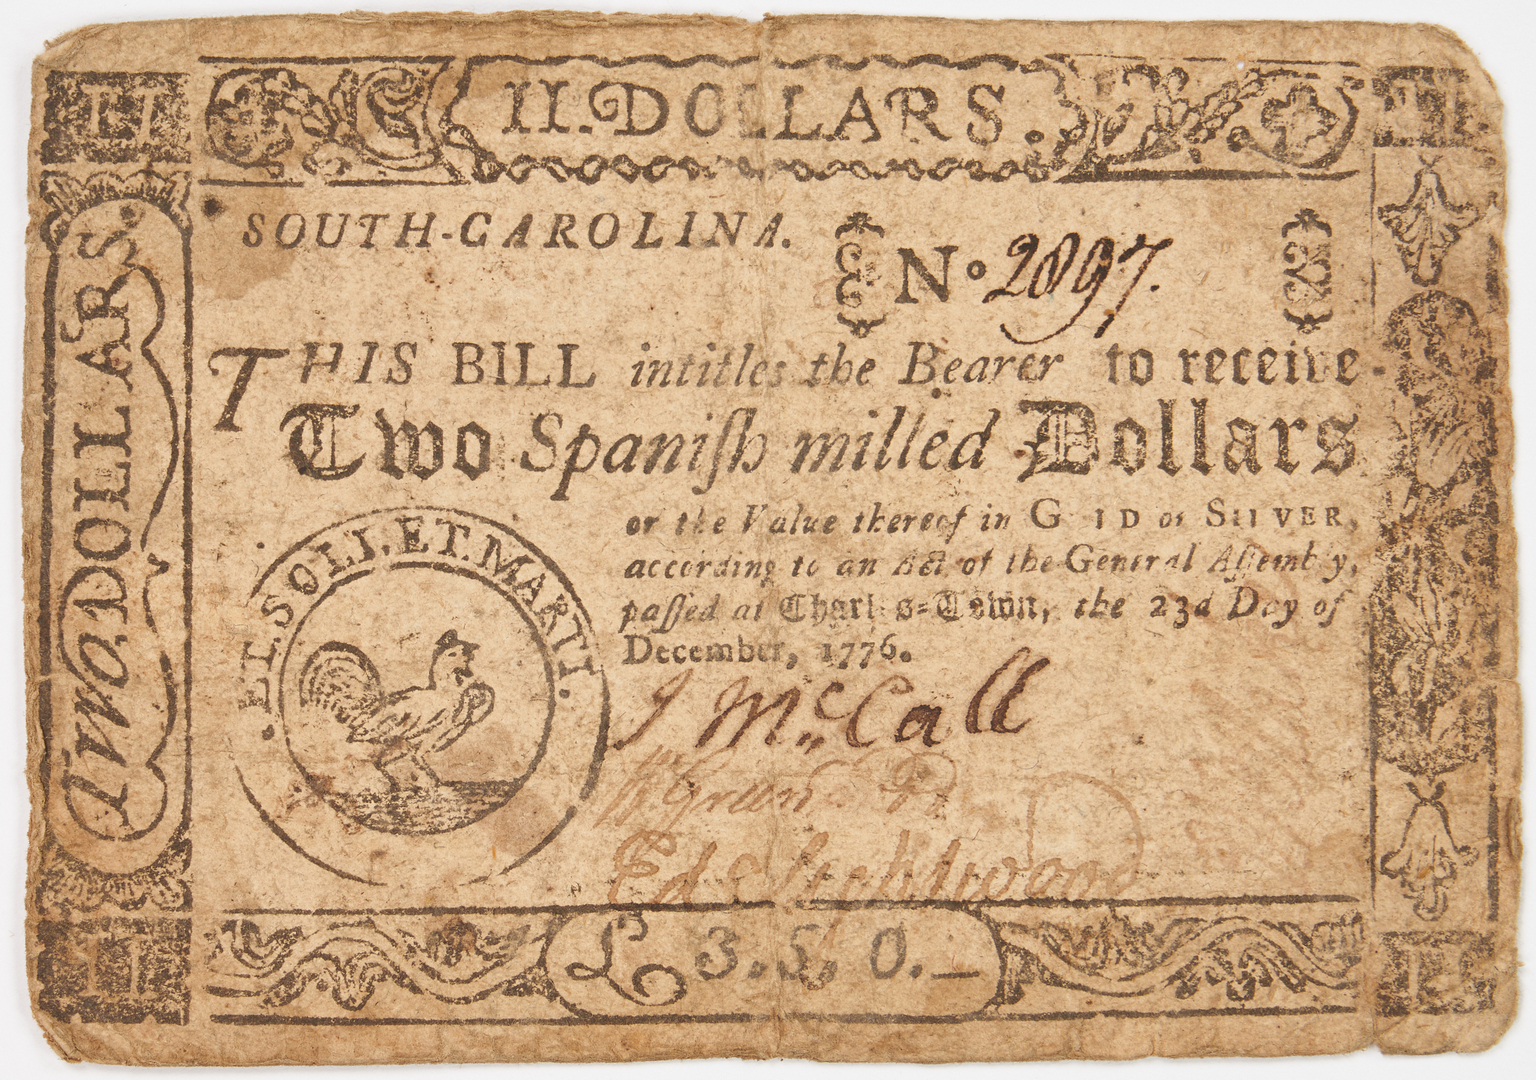 Lot 763: 62 Southern Obsolete Notes, incl. Colonial, Civil War era